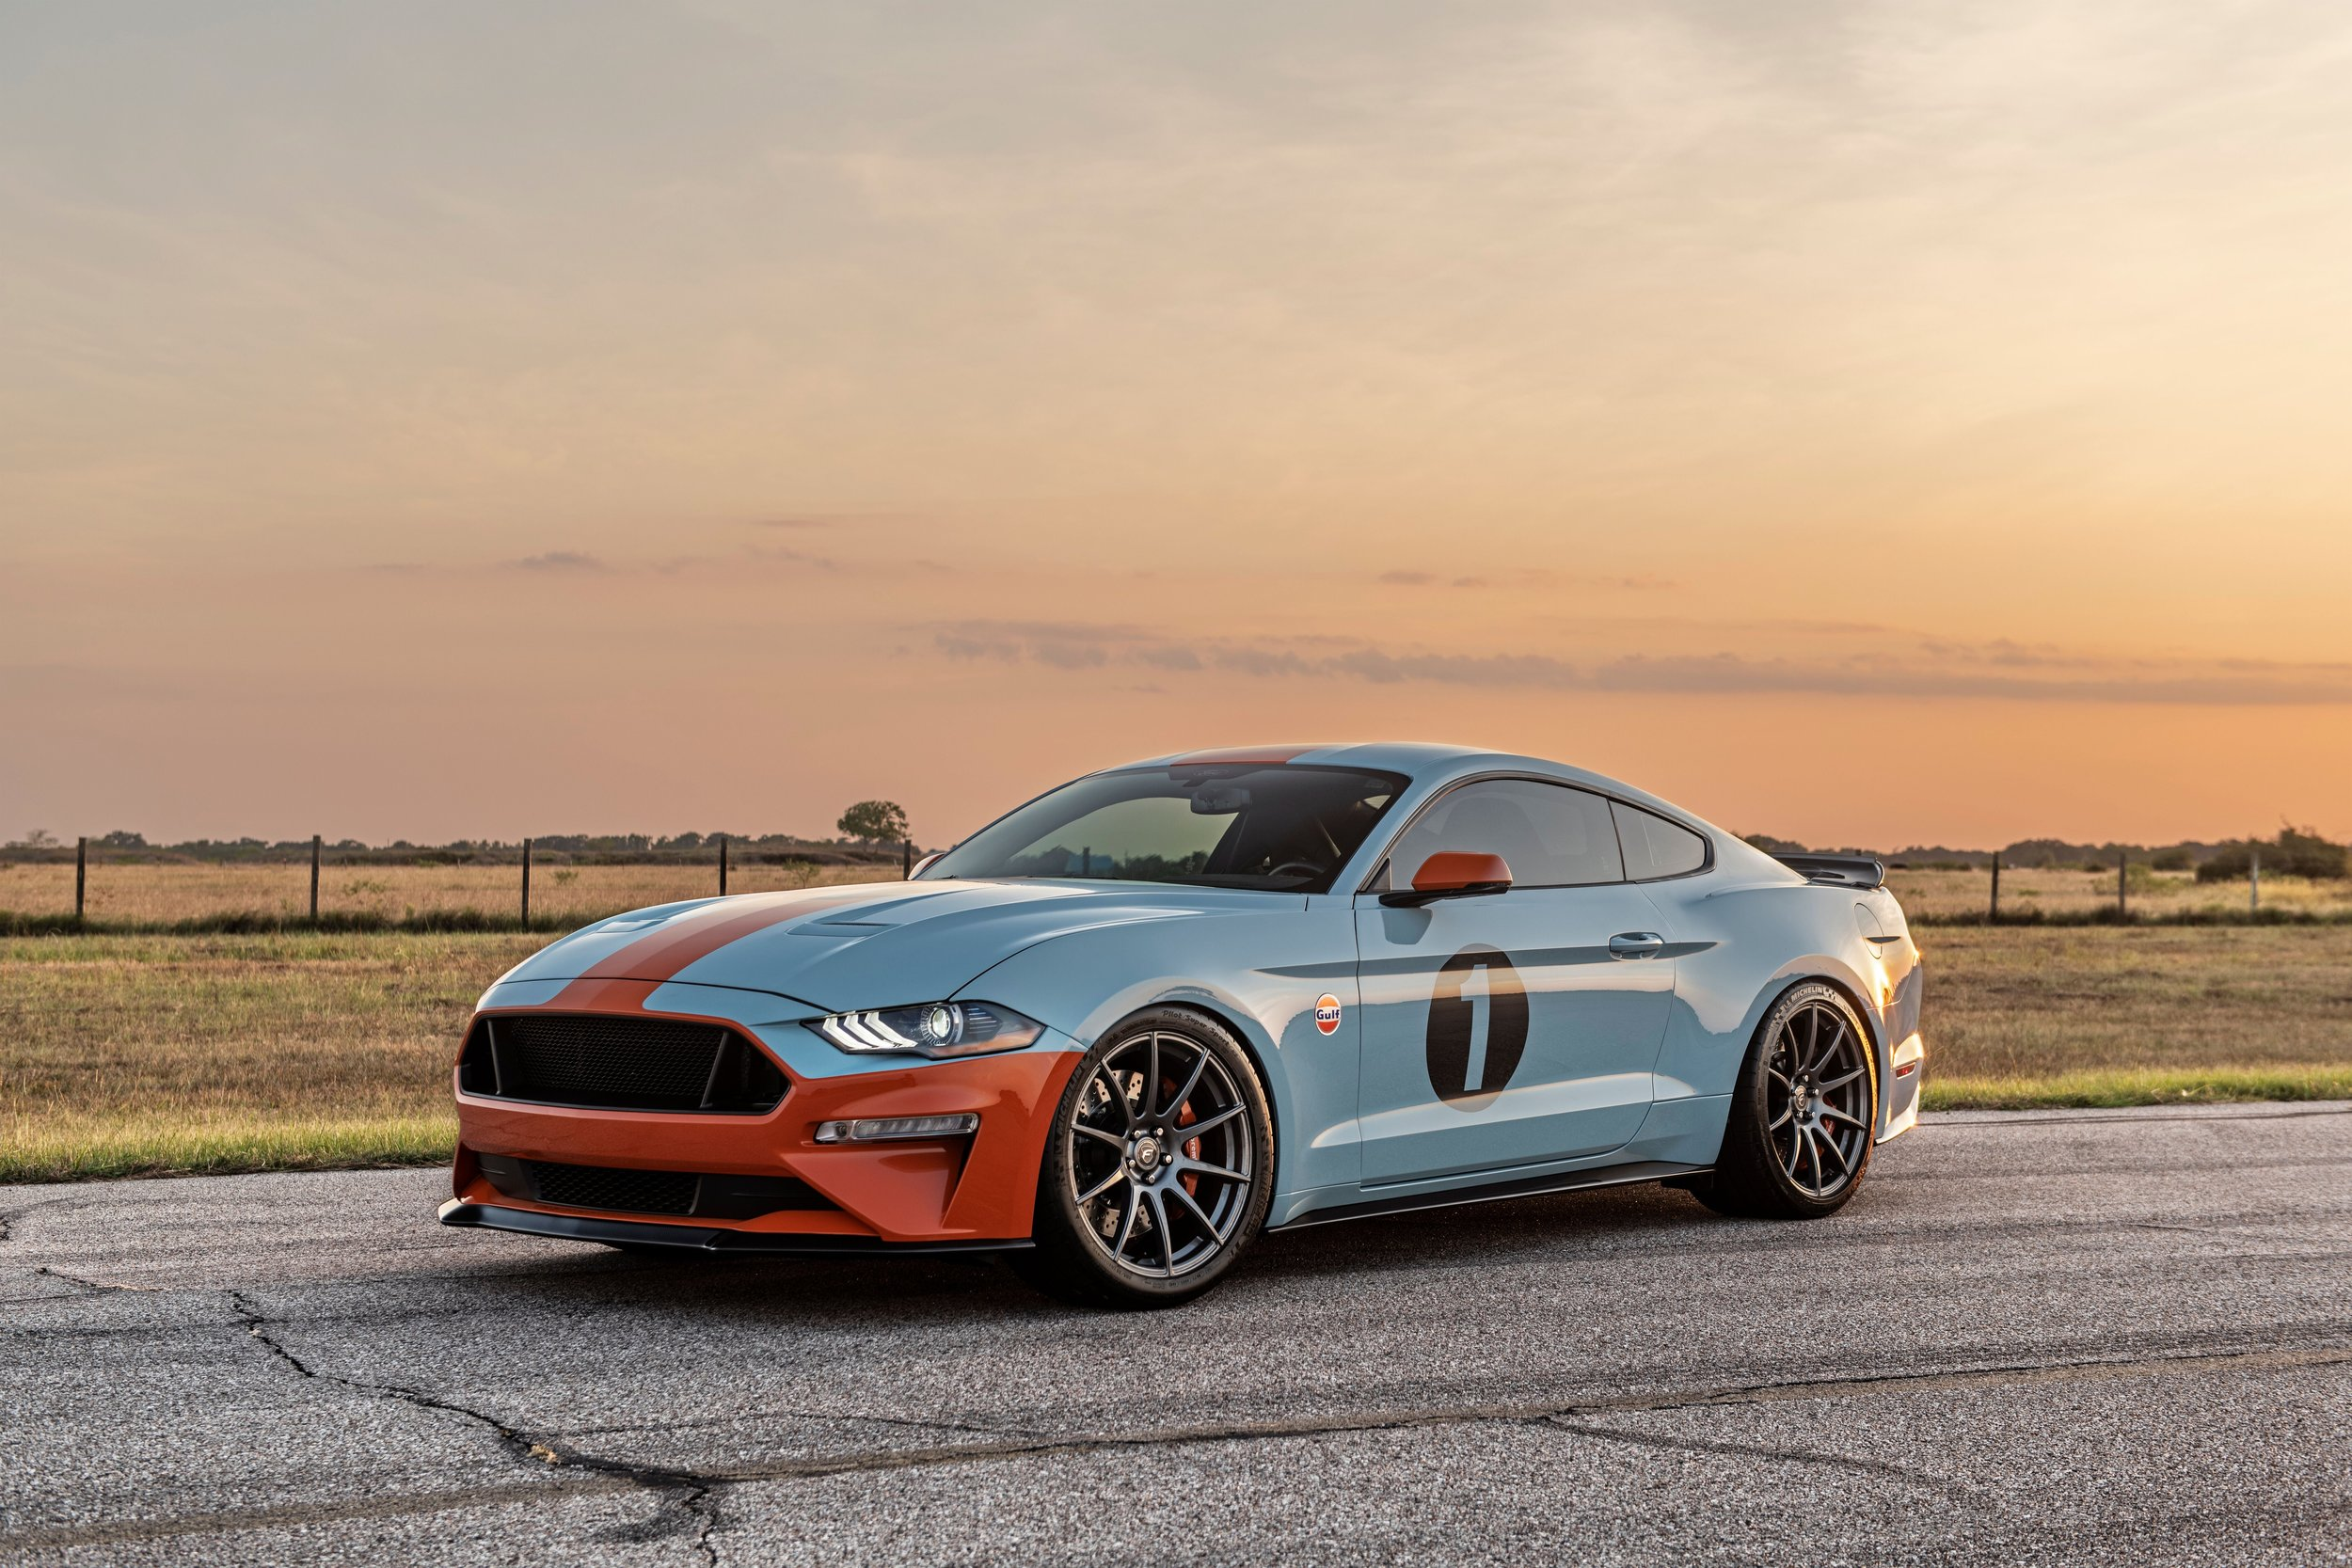 2019-ford-mustang-gulf-heritage-edition.jpeg